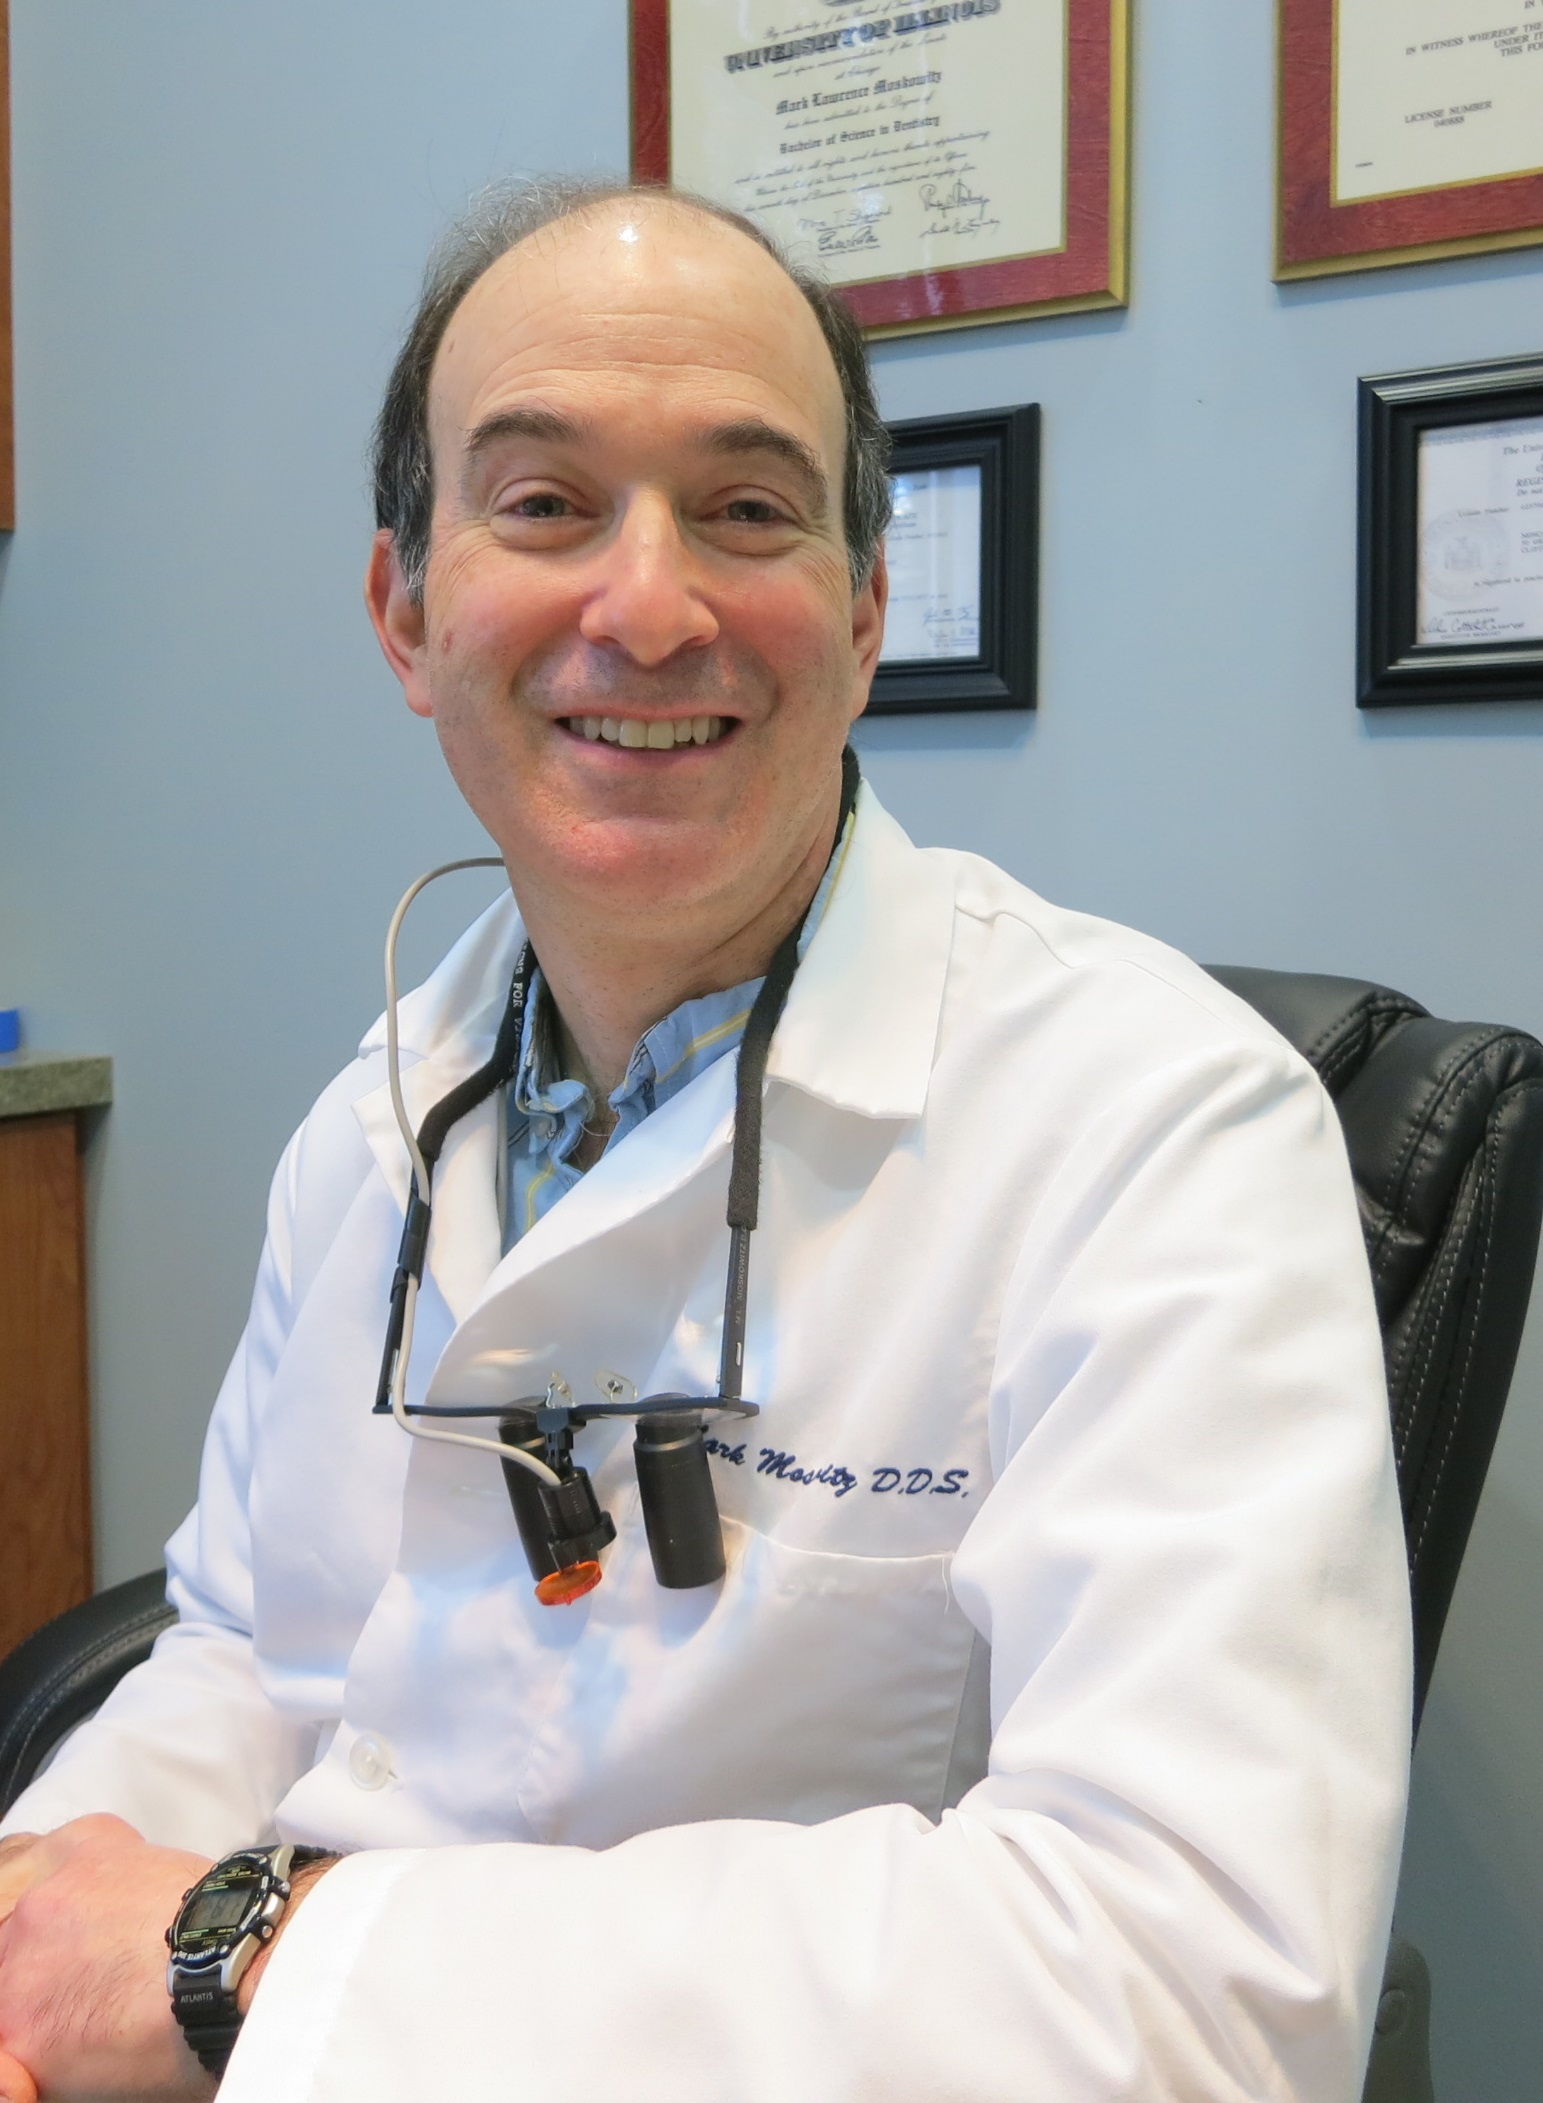 Dr Mark Moskowitz Dds General Dentist In Saratoga